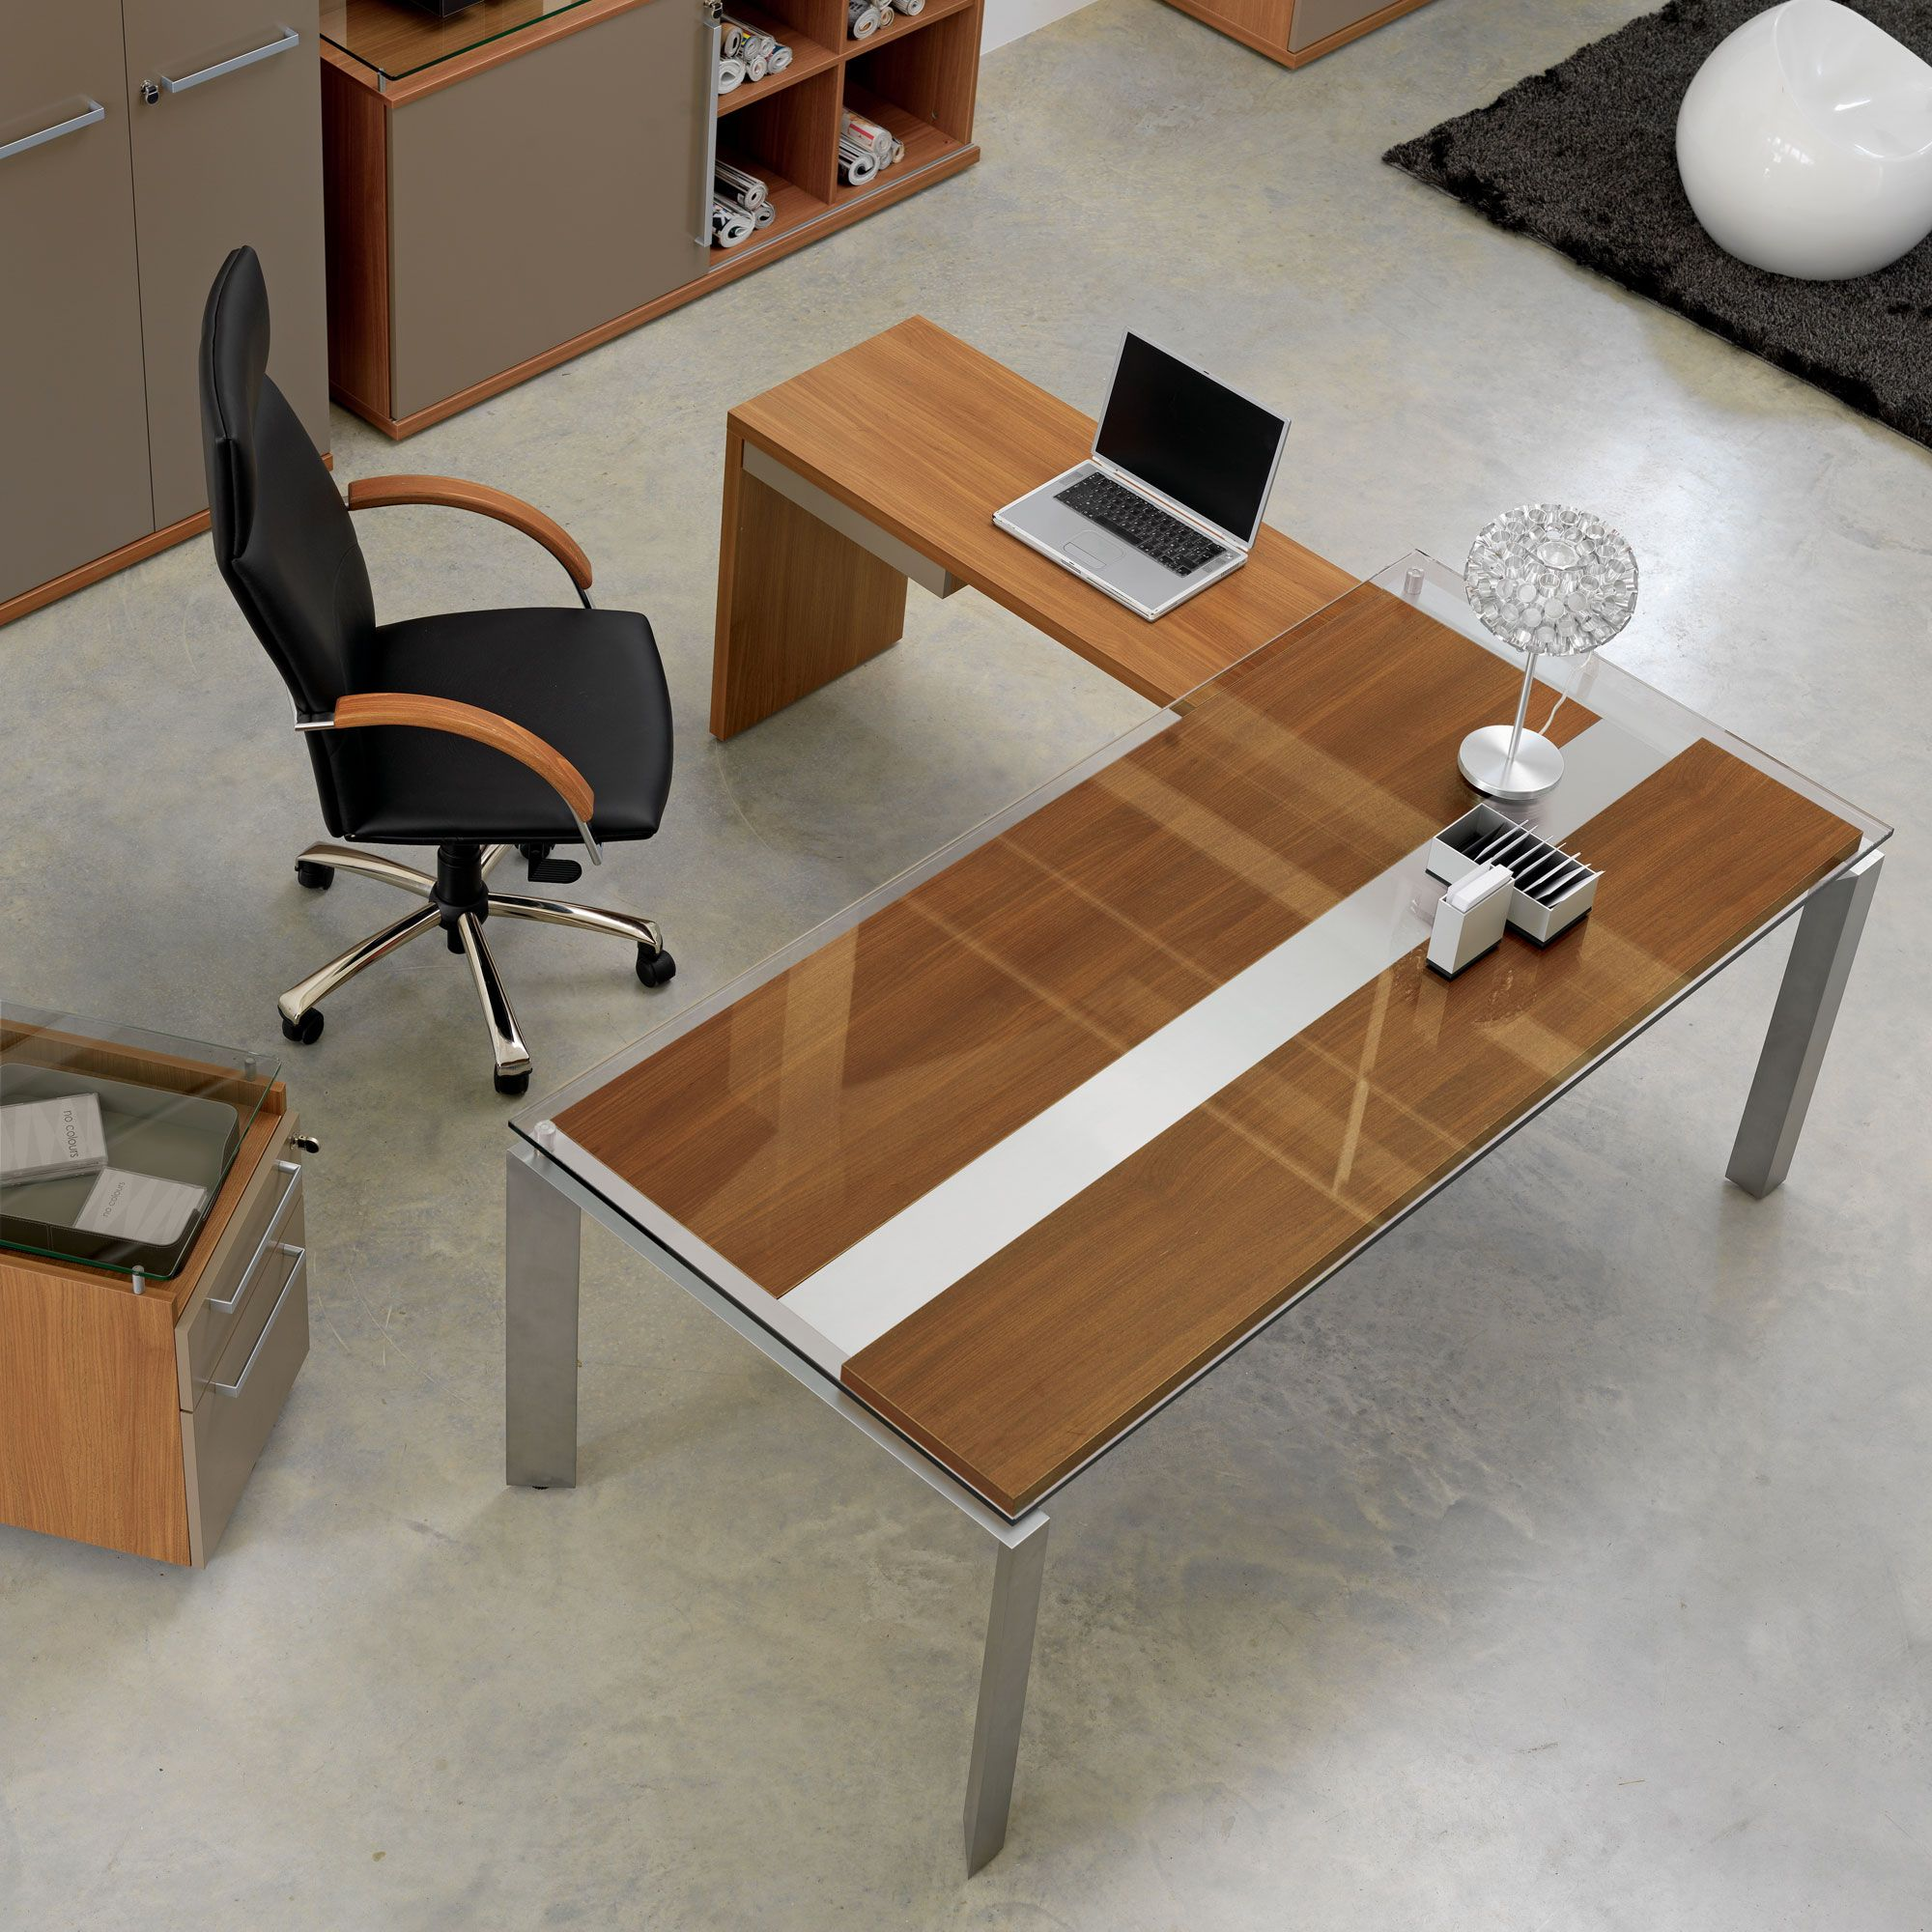 bureau d 39 angle en bois m tal et verre gautier office. Black Bedroom Furniture Sets. Home Design Ideas